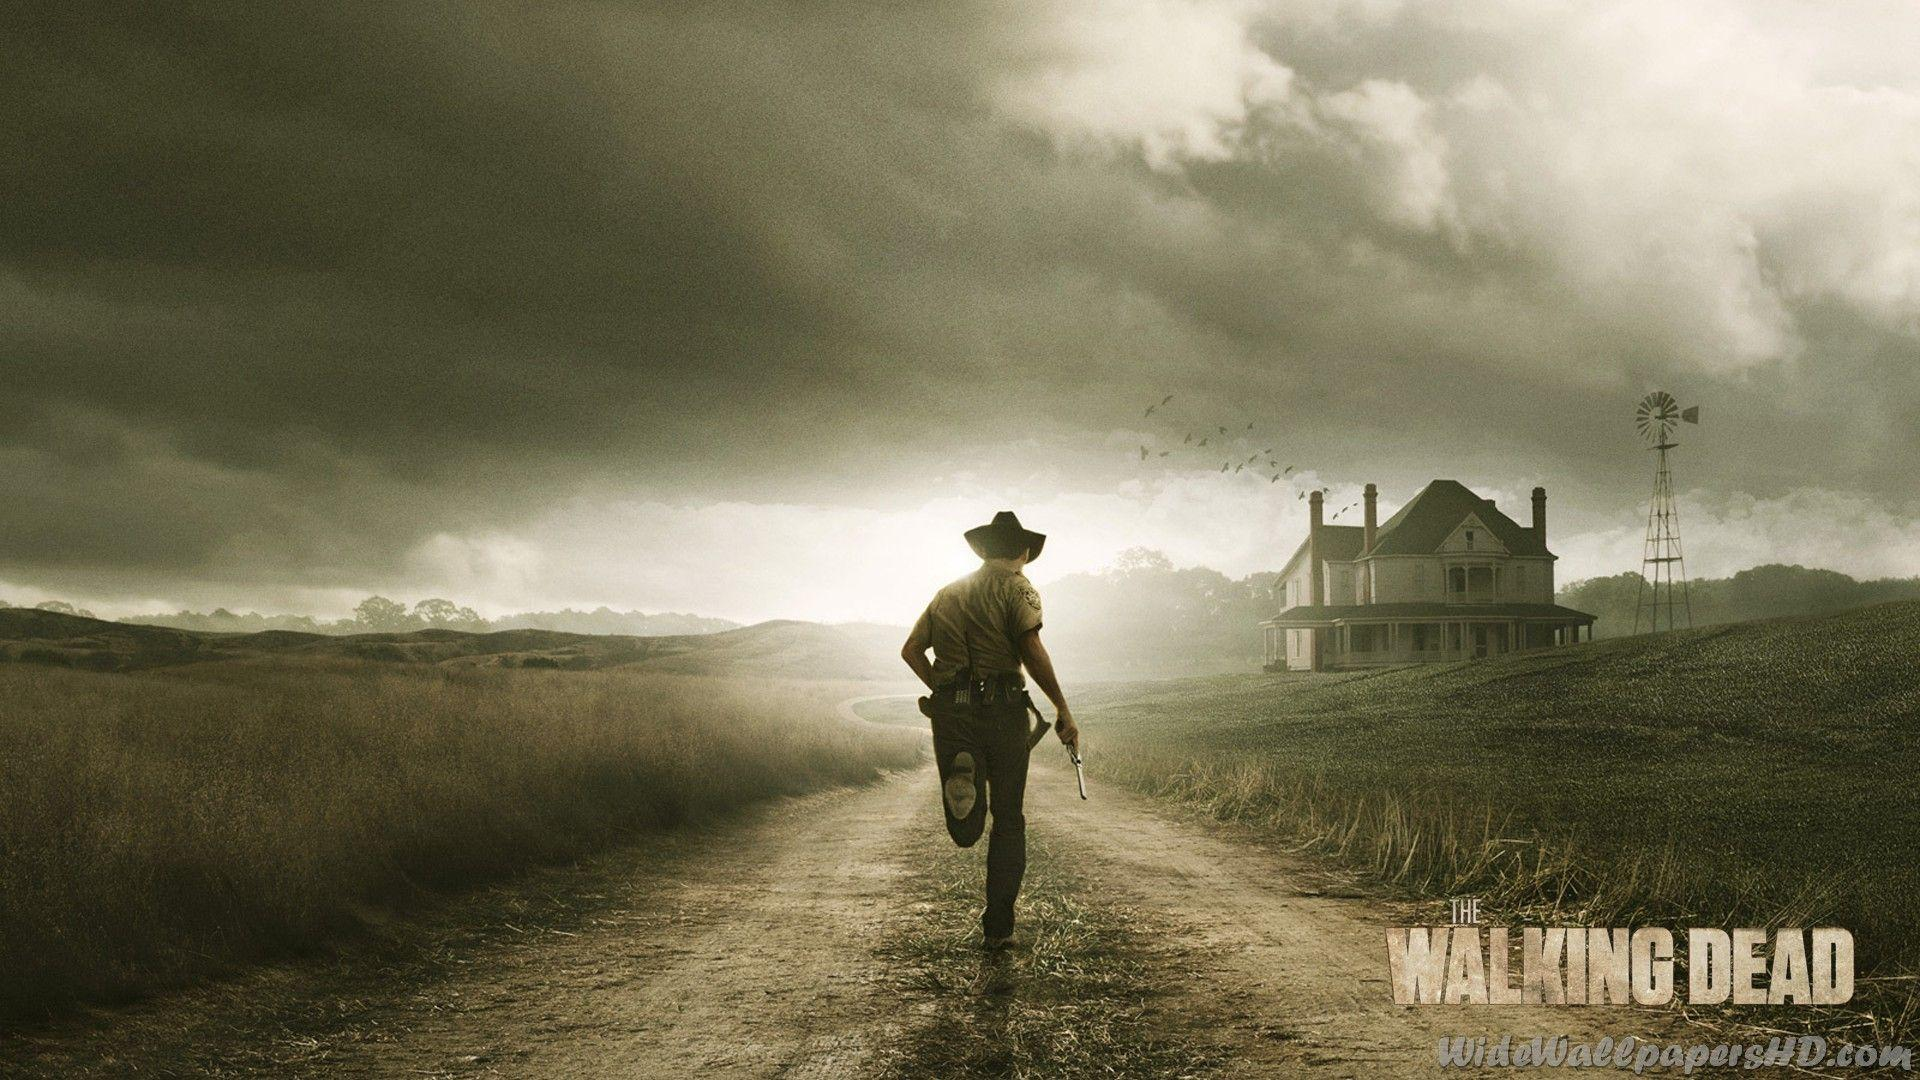 Download Wallpaper 960x544 The walking dead, Molly, Zombies ...